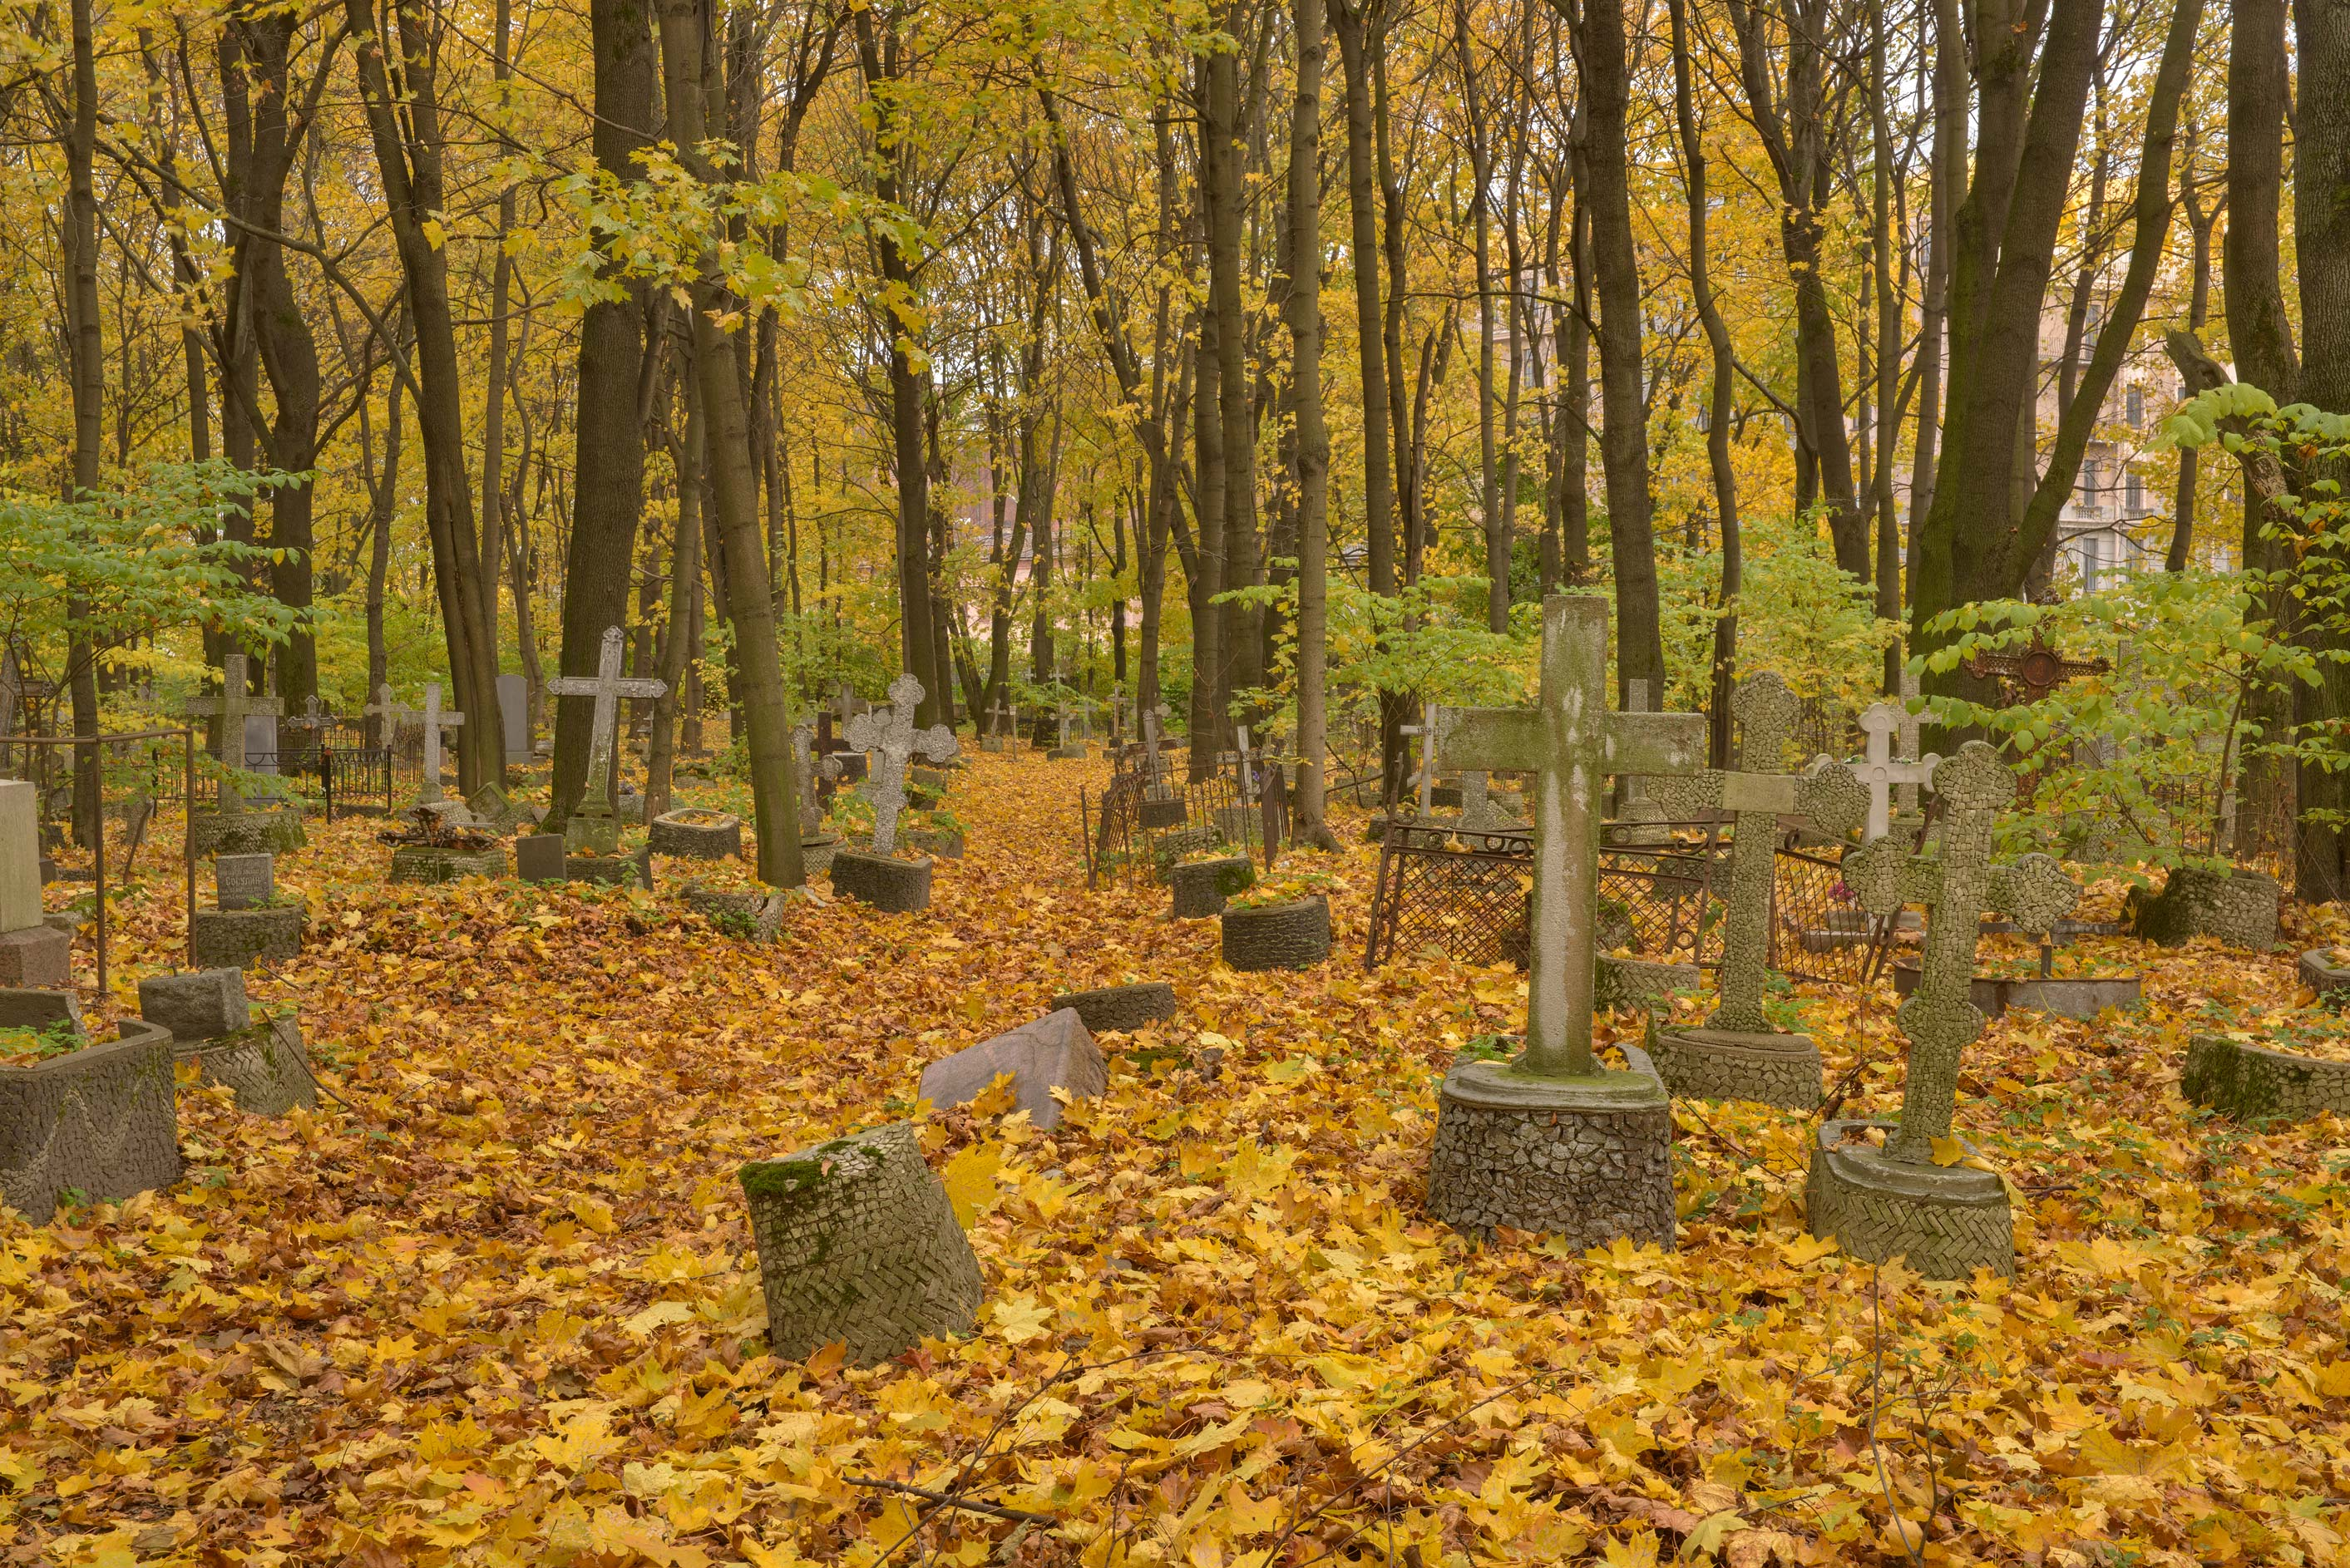 Tombs with crosses in Novodevichye Cemetery at Moskovskiy Prospect. St.Petersburg, Russia